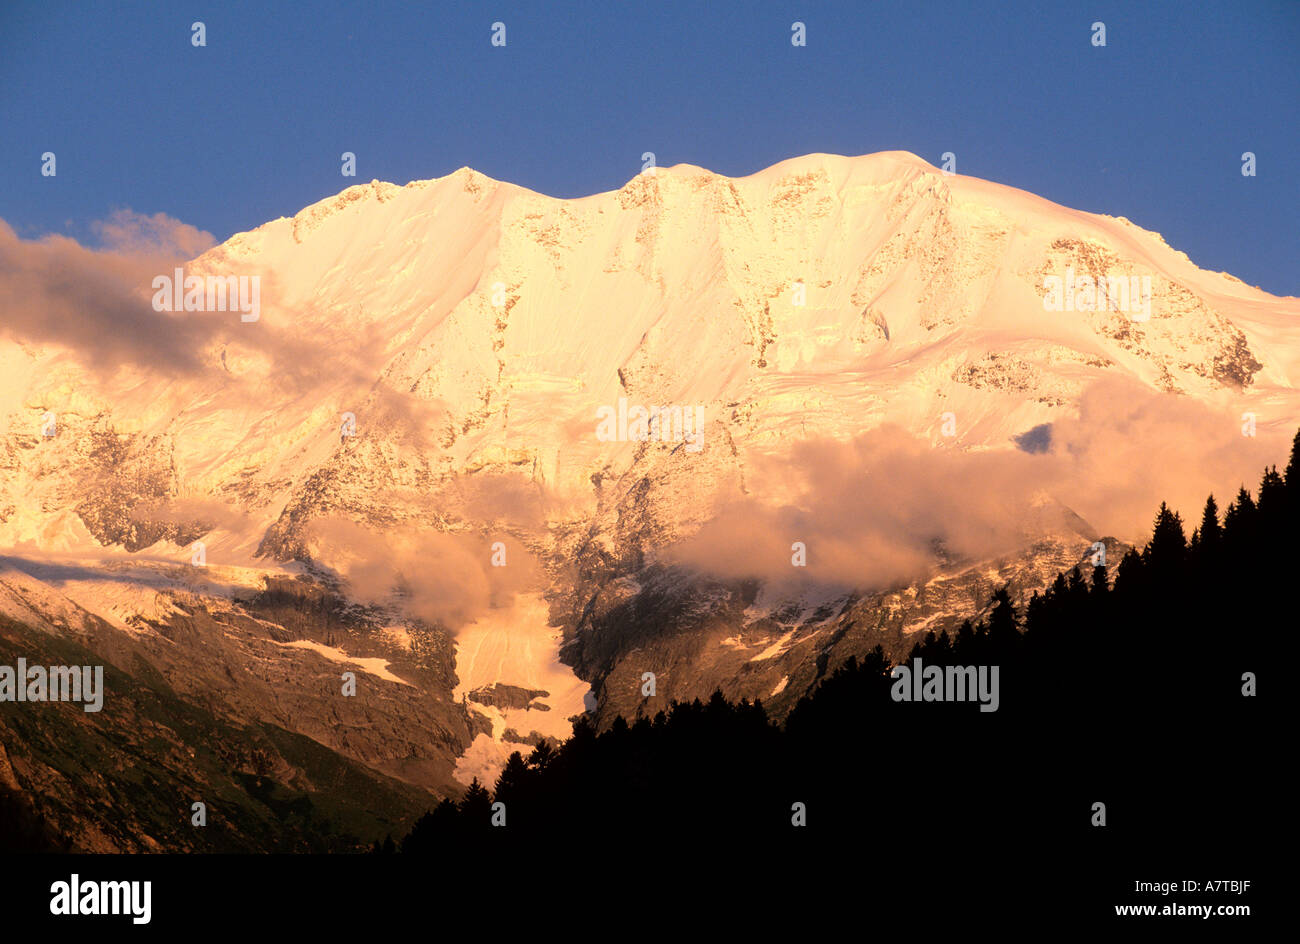 France, Haute Savoie, Dome de Miage in Mont Blanc massif seen from the Val Monjoie - Stock Image